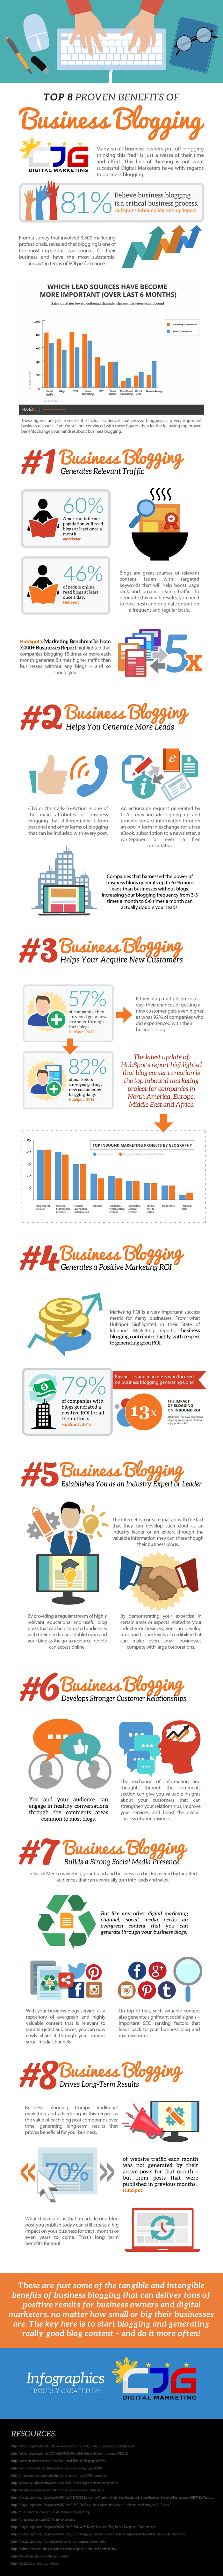 business blog infographic